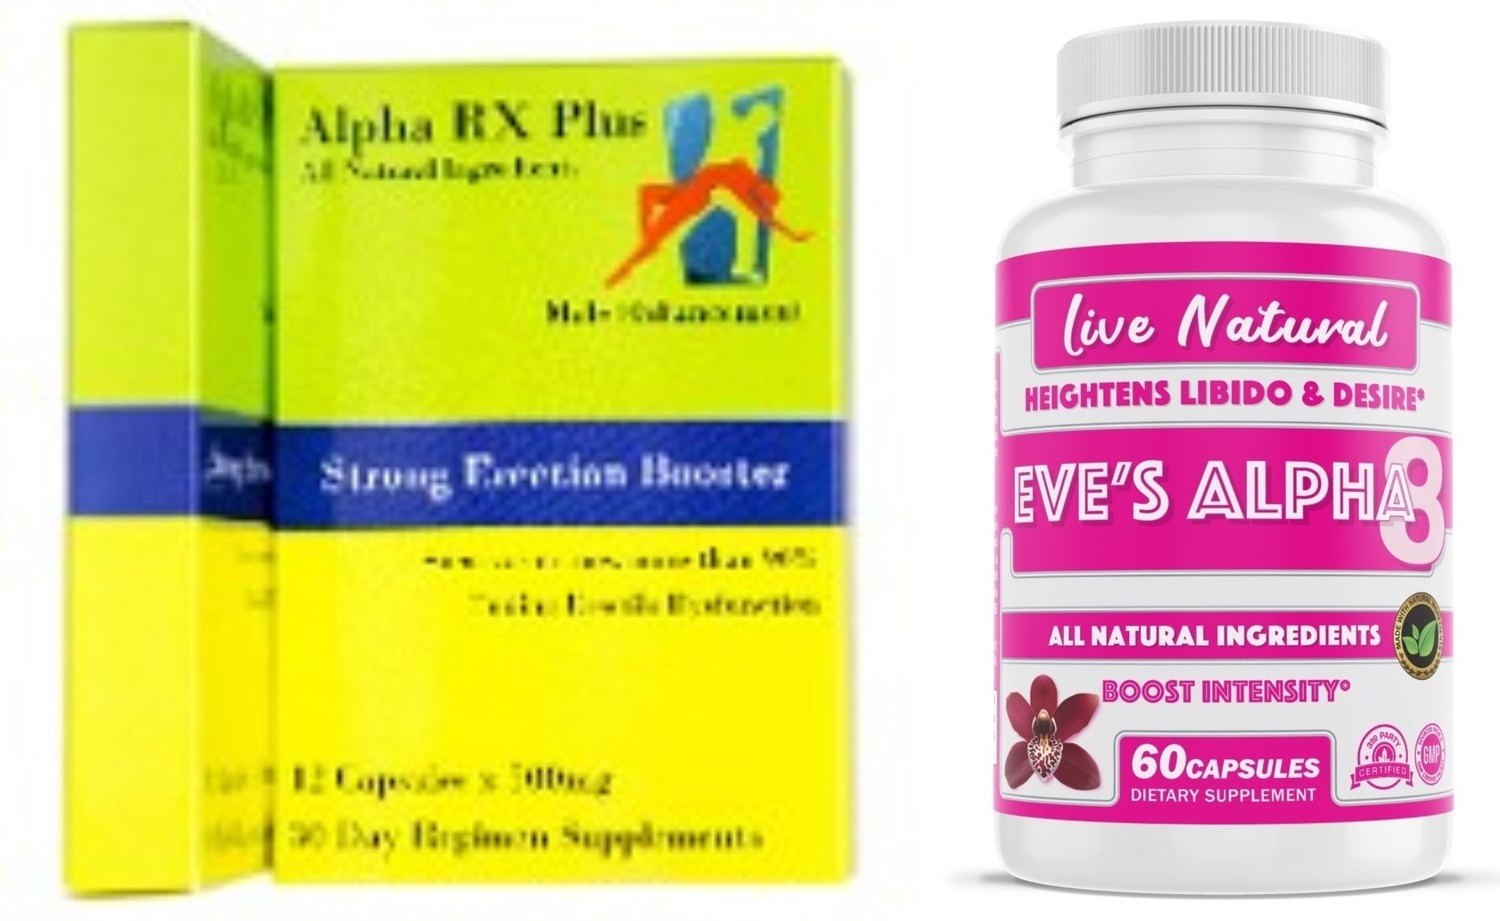 """Alpha RX Plus/Eve's Alpha8 """"lovers night combo"""" for him and her. Free shipping"""